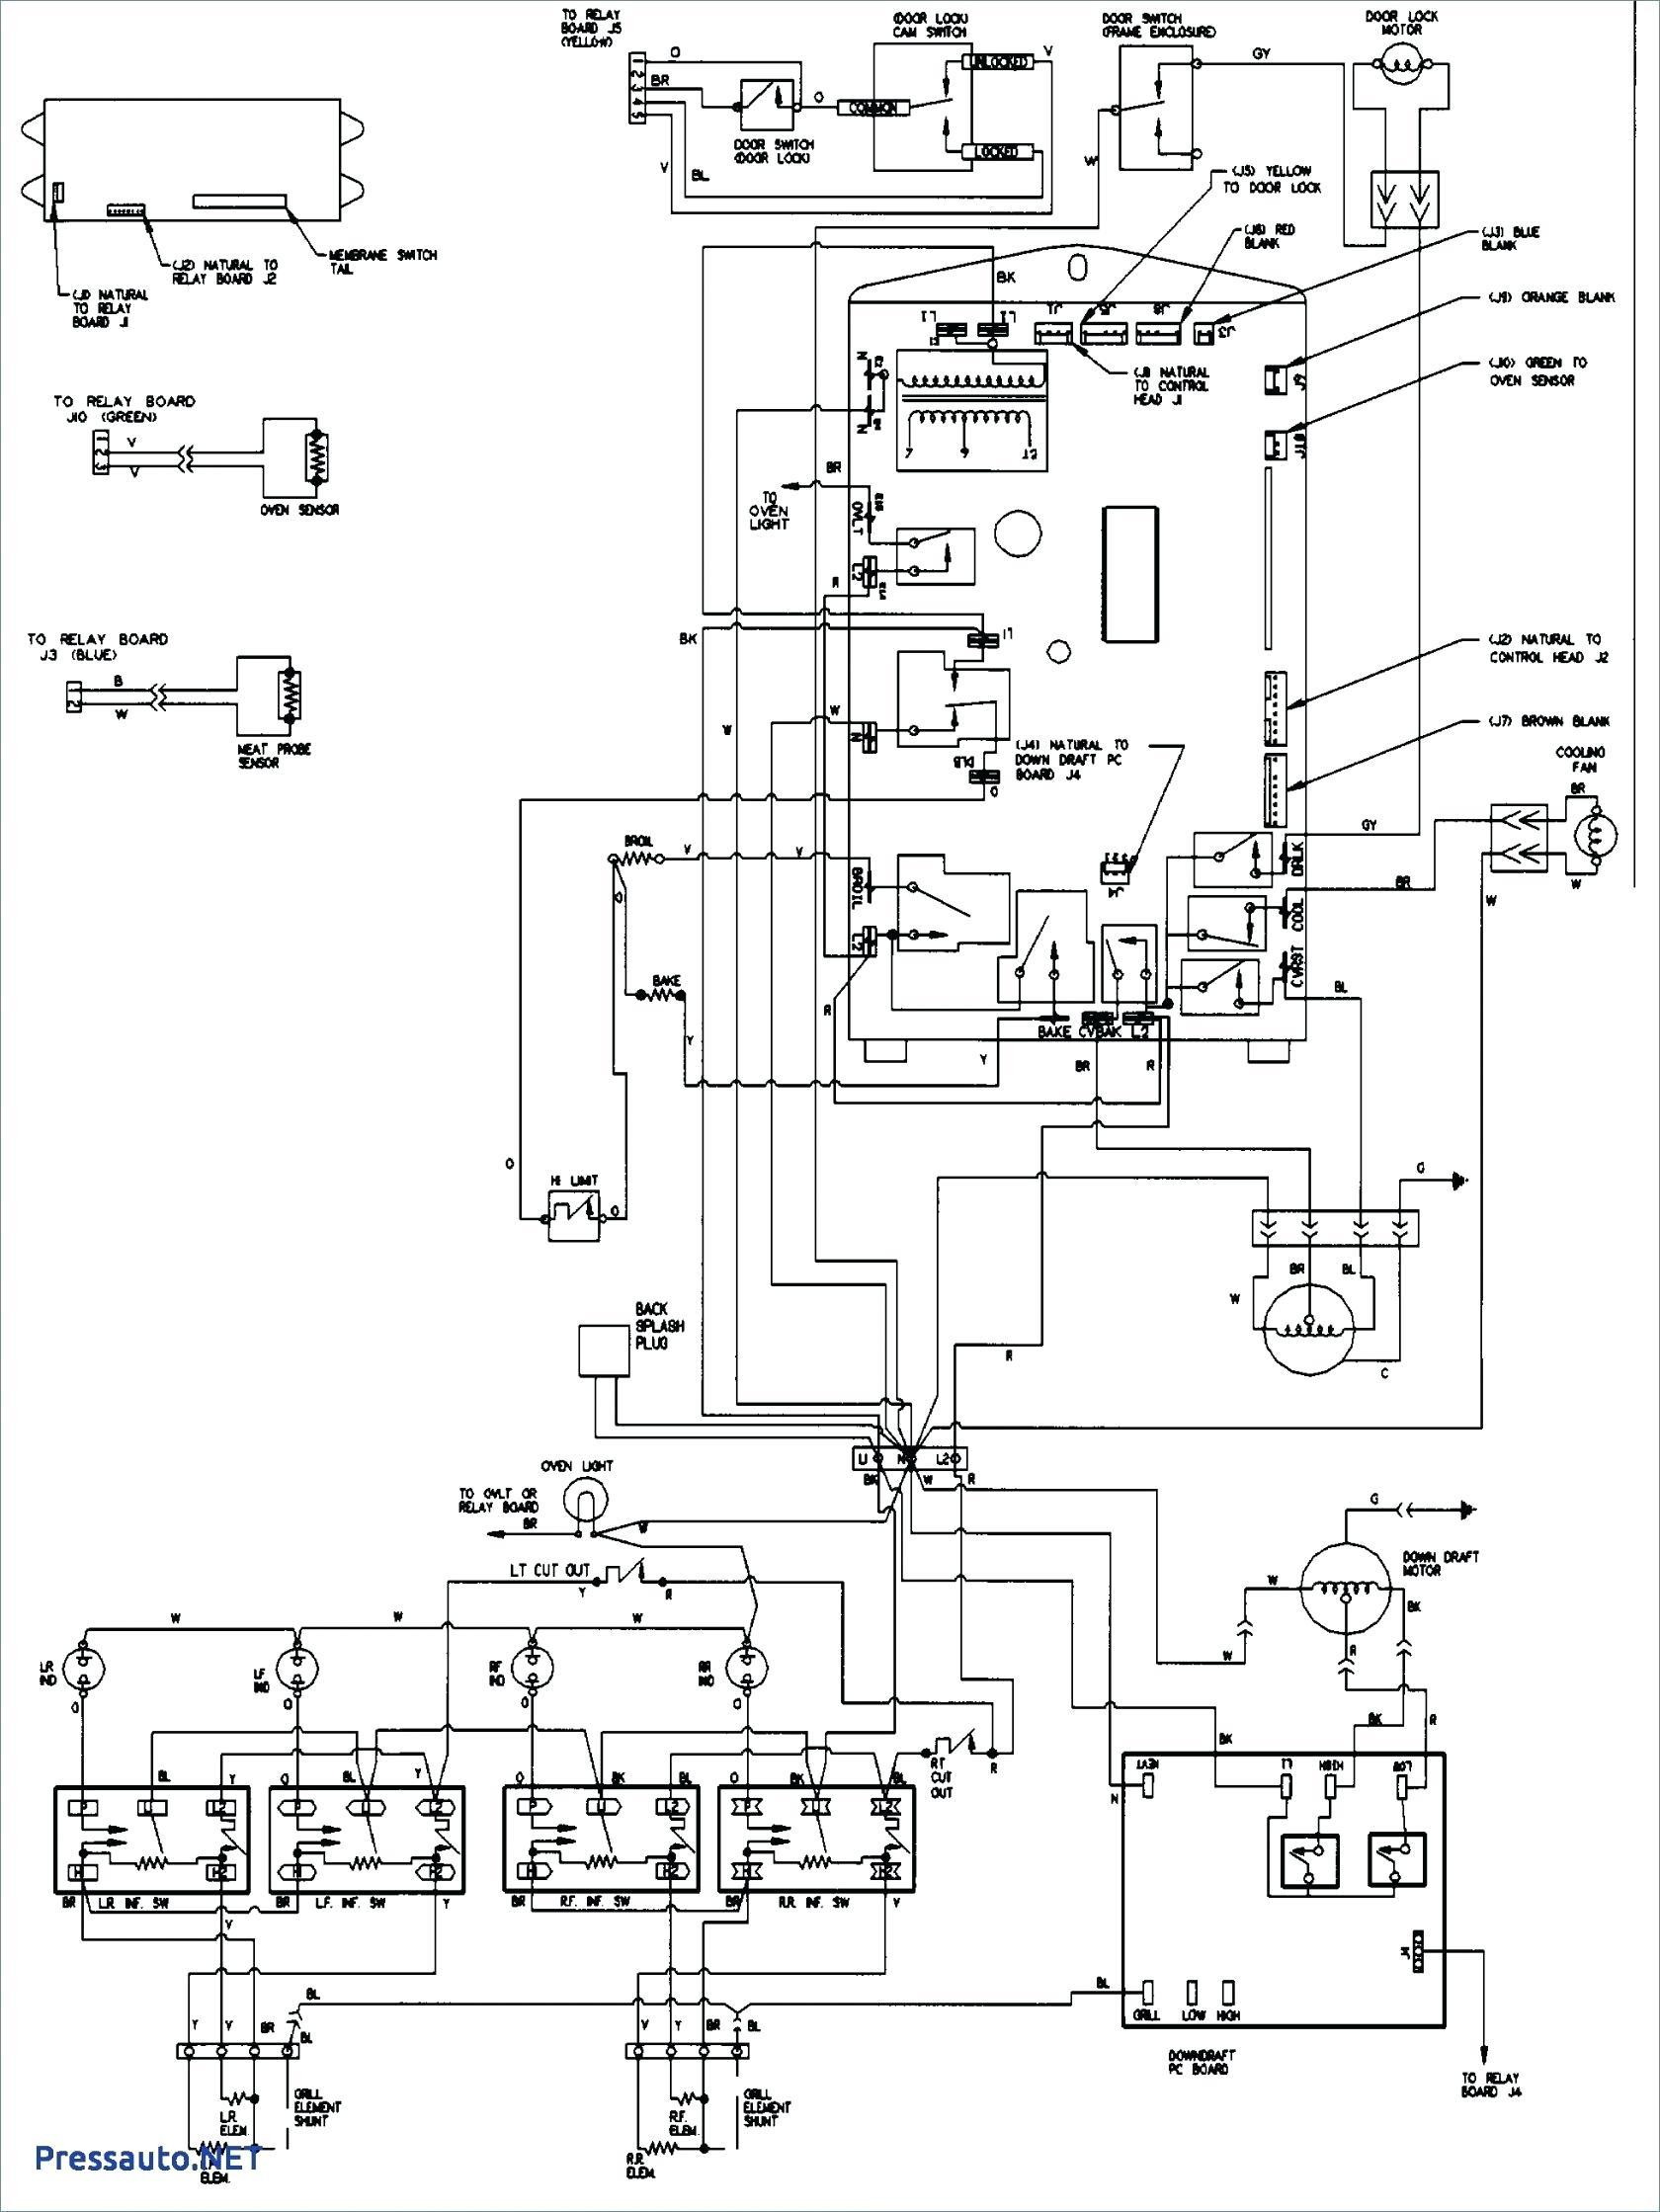 Old Lennox Thermostat Wiring Diagram from static-resources.imageservice.cloud